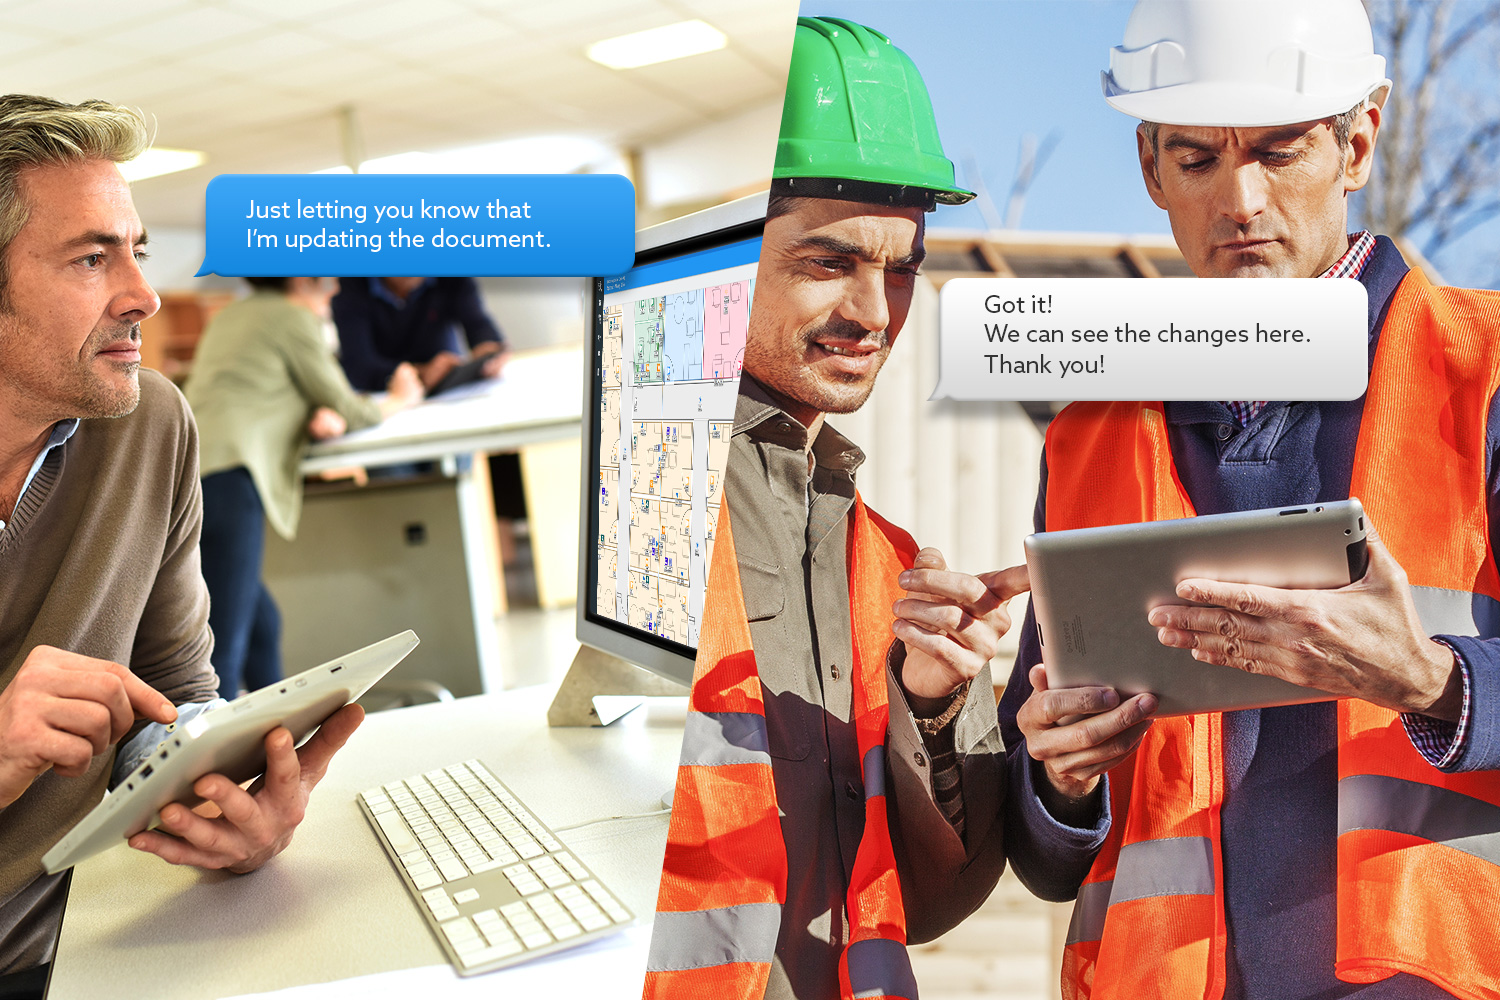 Construction Management - Design, build and deliver construction projects more easily by sharing design plans online and synchronizing construction markups with your central BIM model. Reduce costs and delays with enhanced web collaboration.